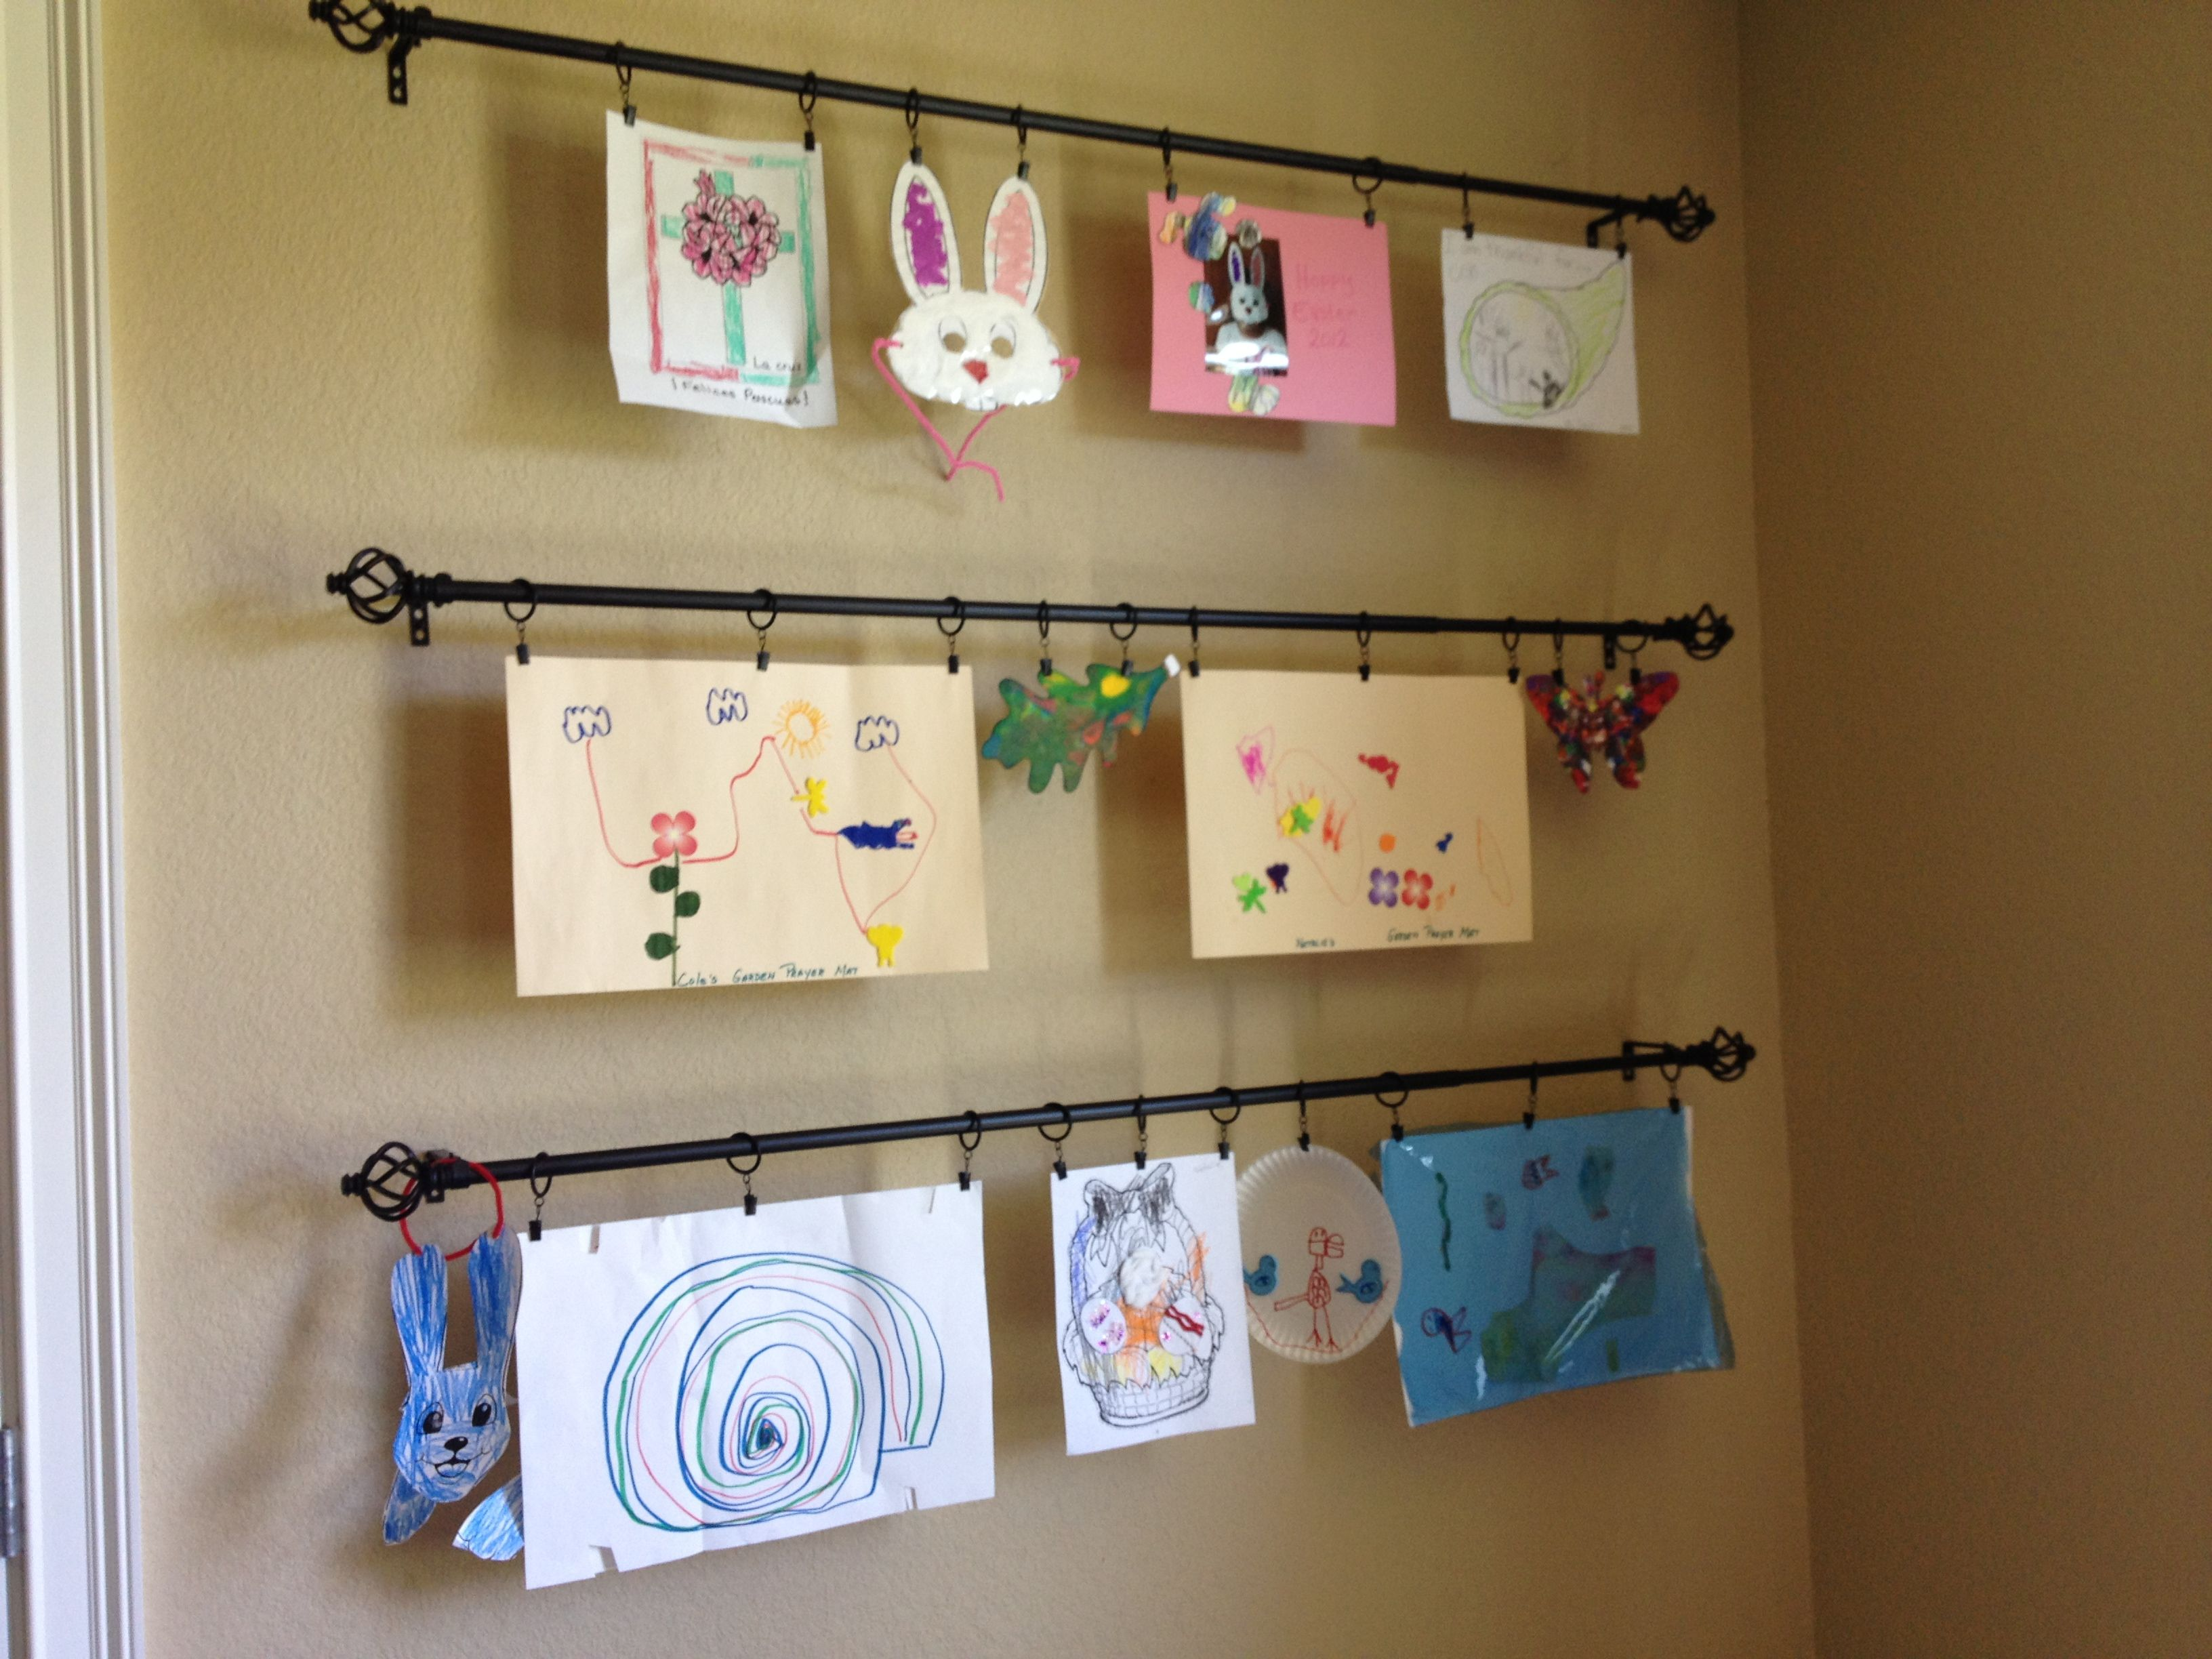 Kids Art Wall Used Curtain Rods With Clip Rings So Can Adjust Size To Art Easily Change As My Lil Artists With